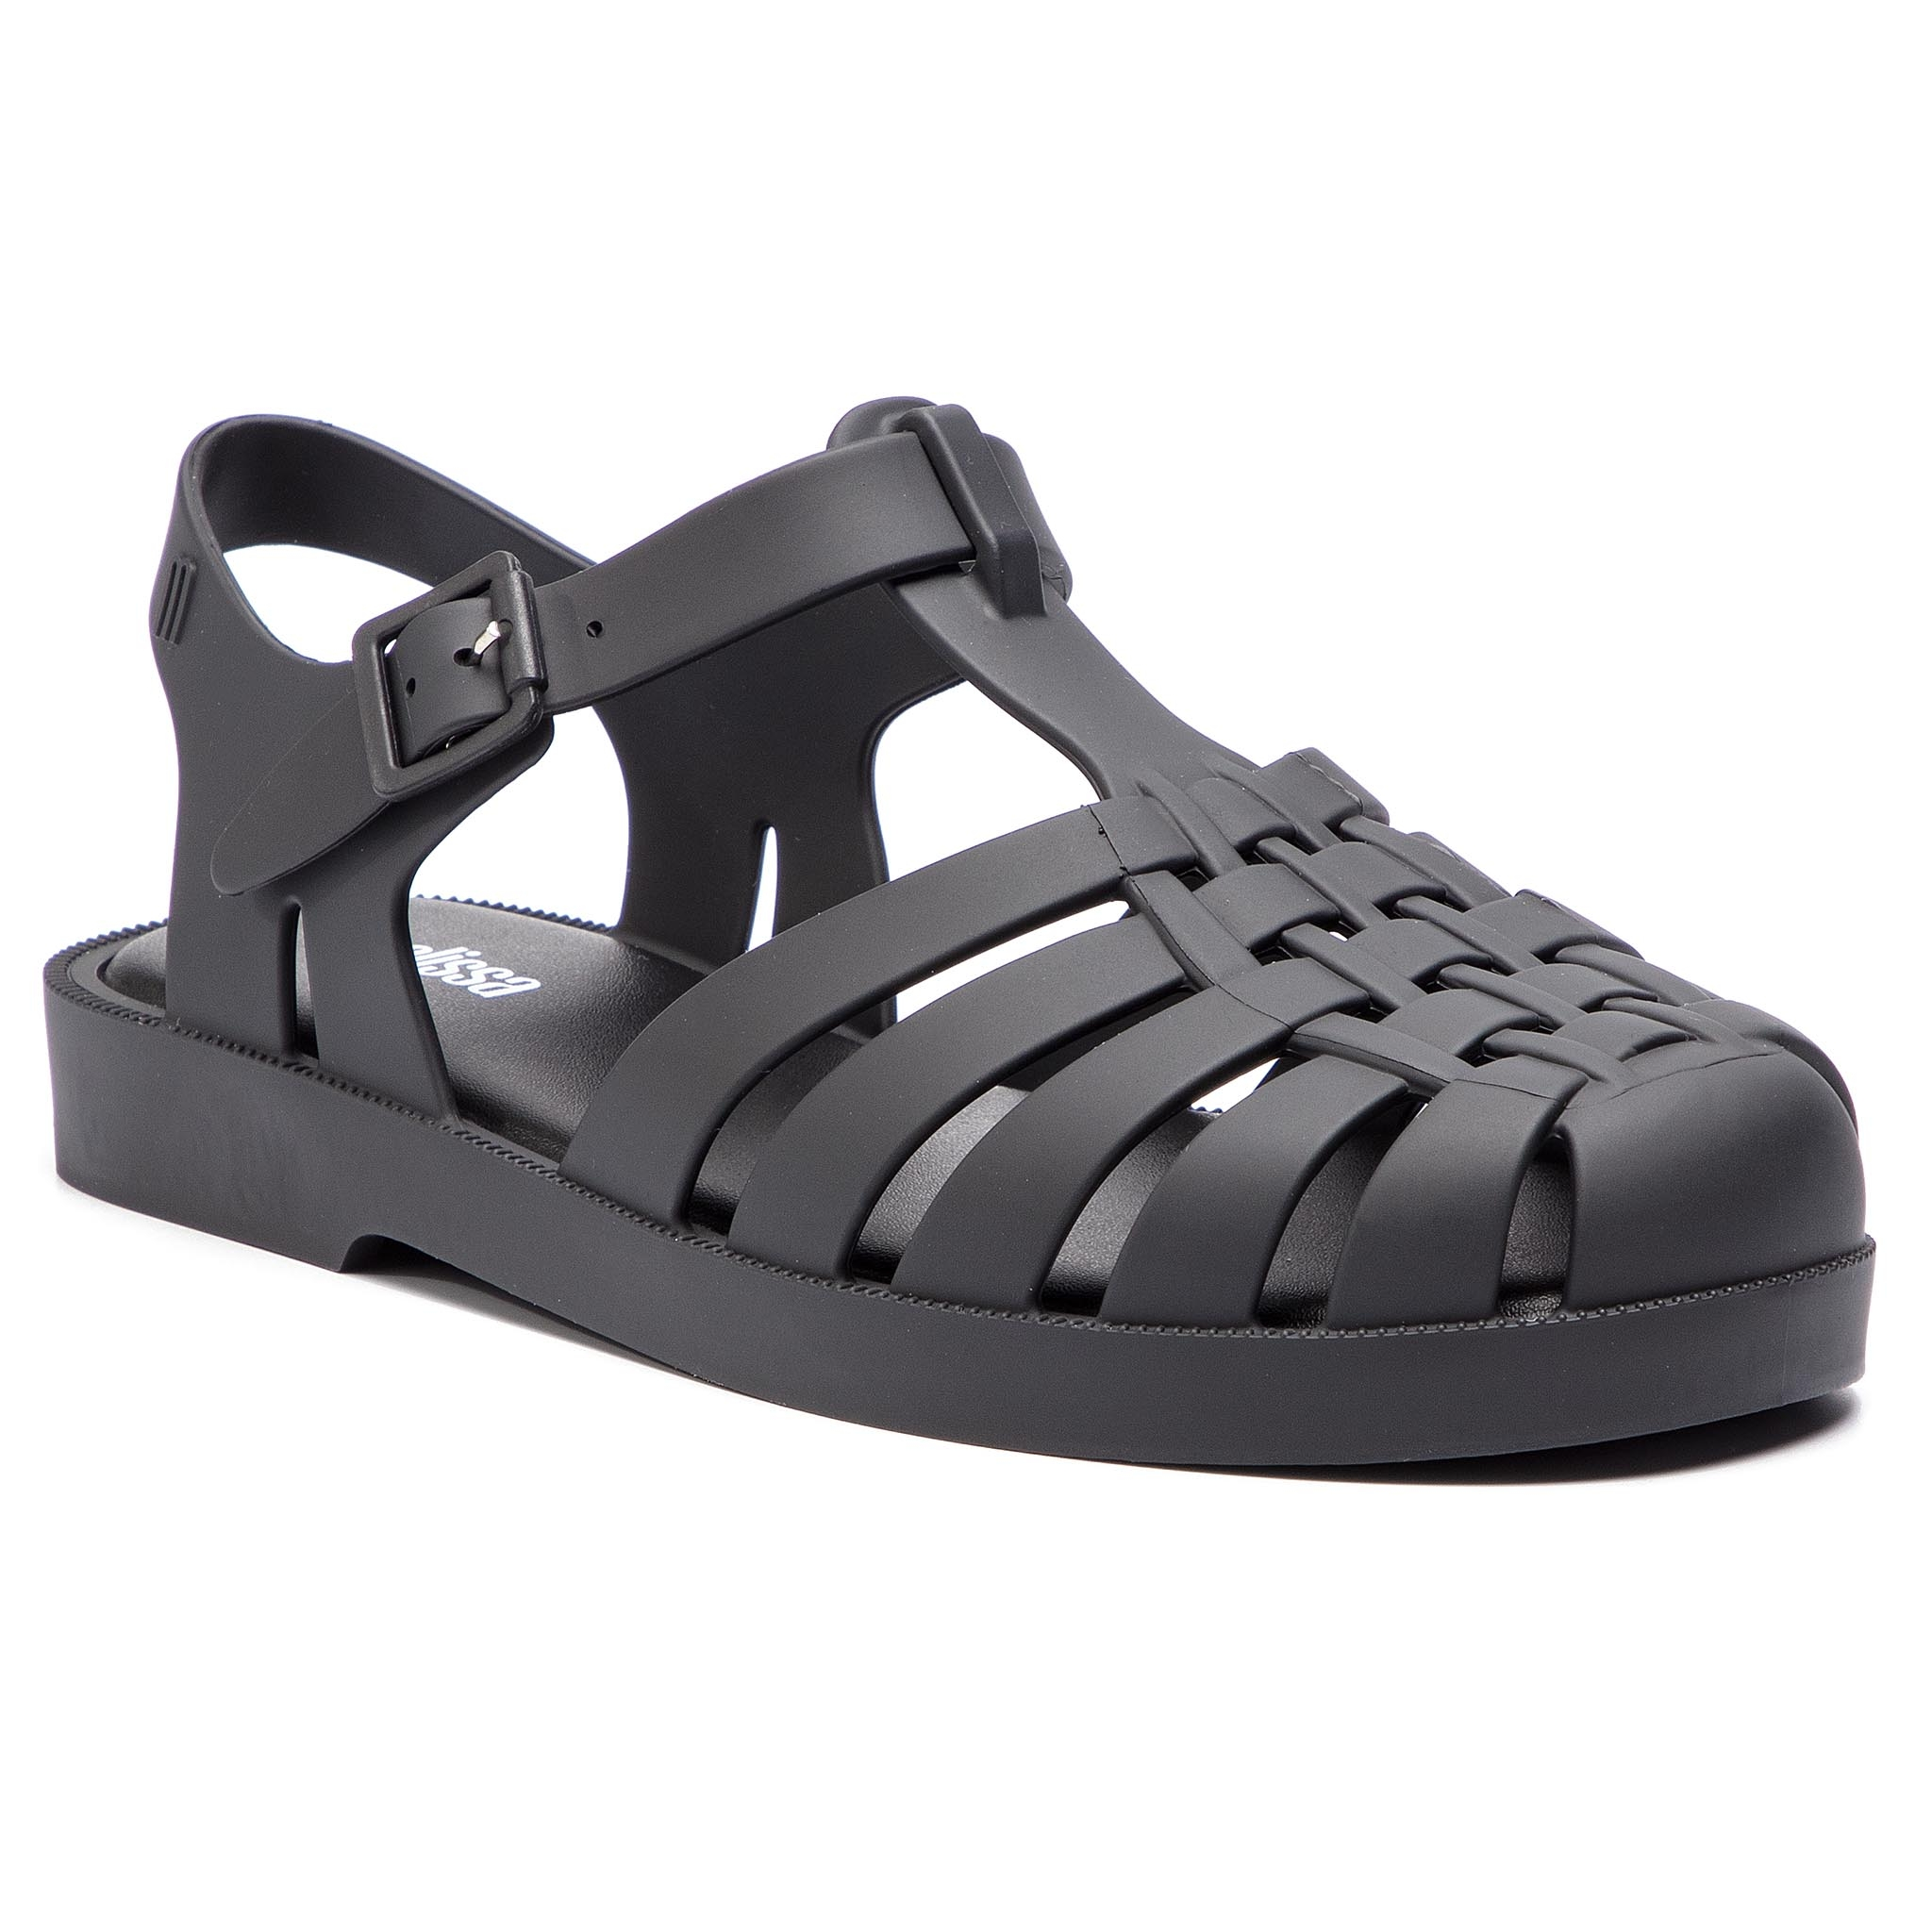 Sandale Melissa - Possession Ad 32408 Black 52292 imagine epantofi.ro 2021